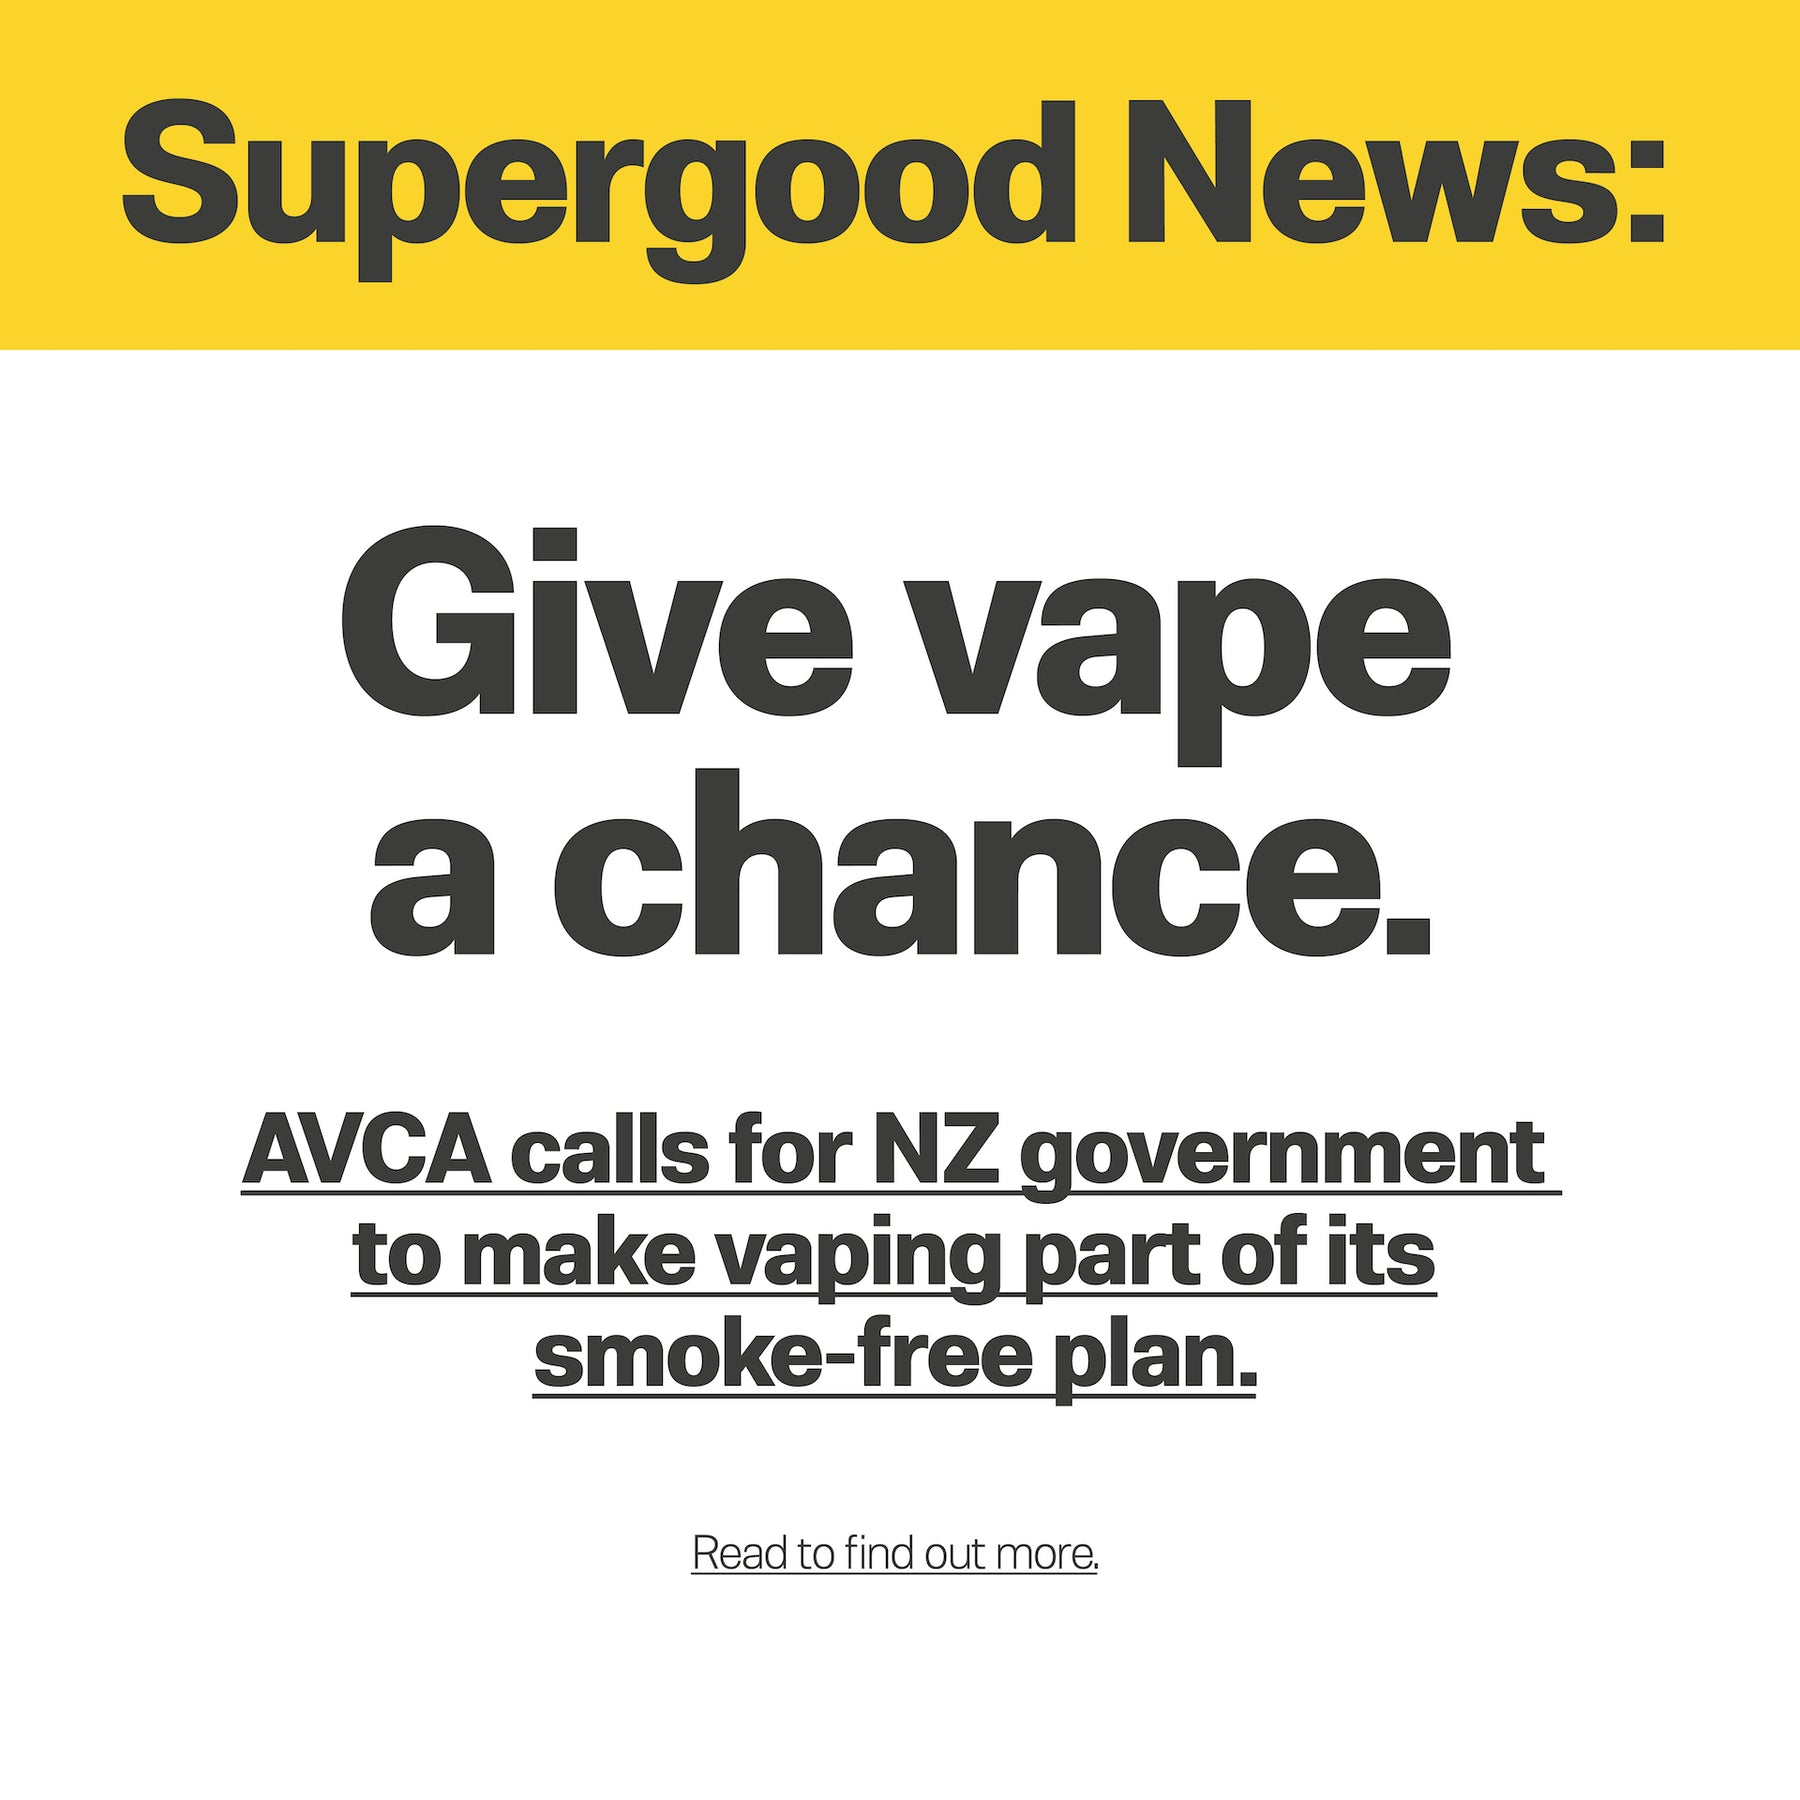 Give vape a chance.